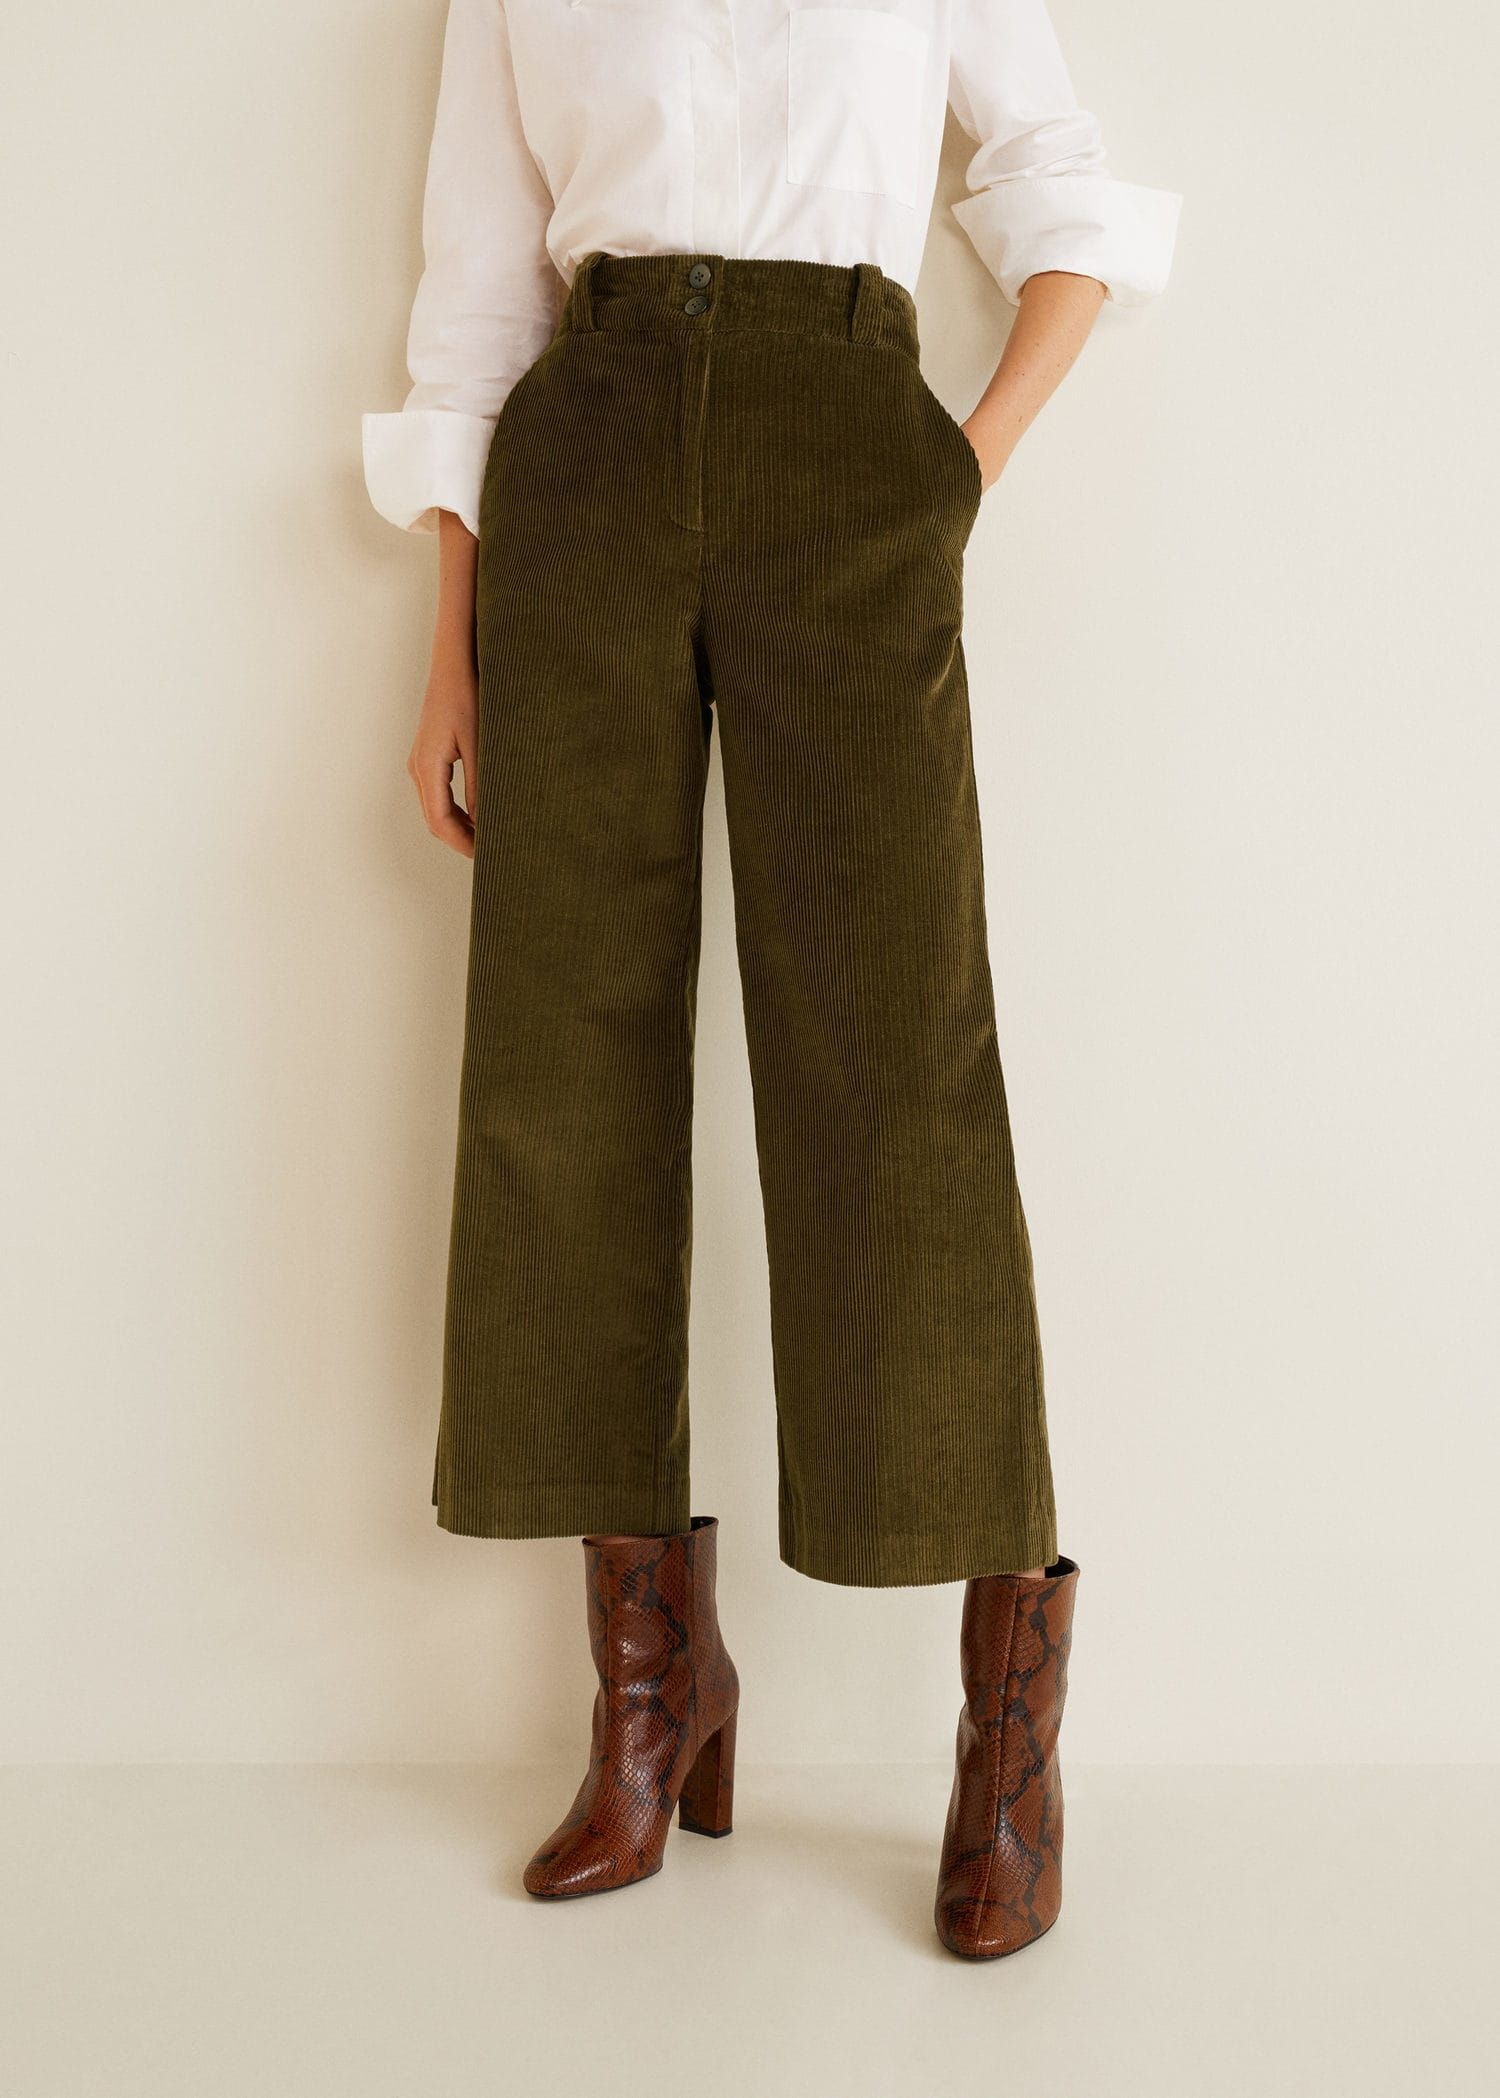 ba6763b914 Flared corduroy trousers - Woman in 2019 | STYLE | Fashion, Outfits ...